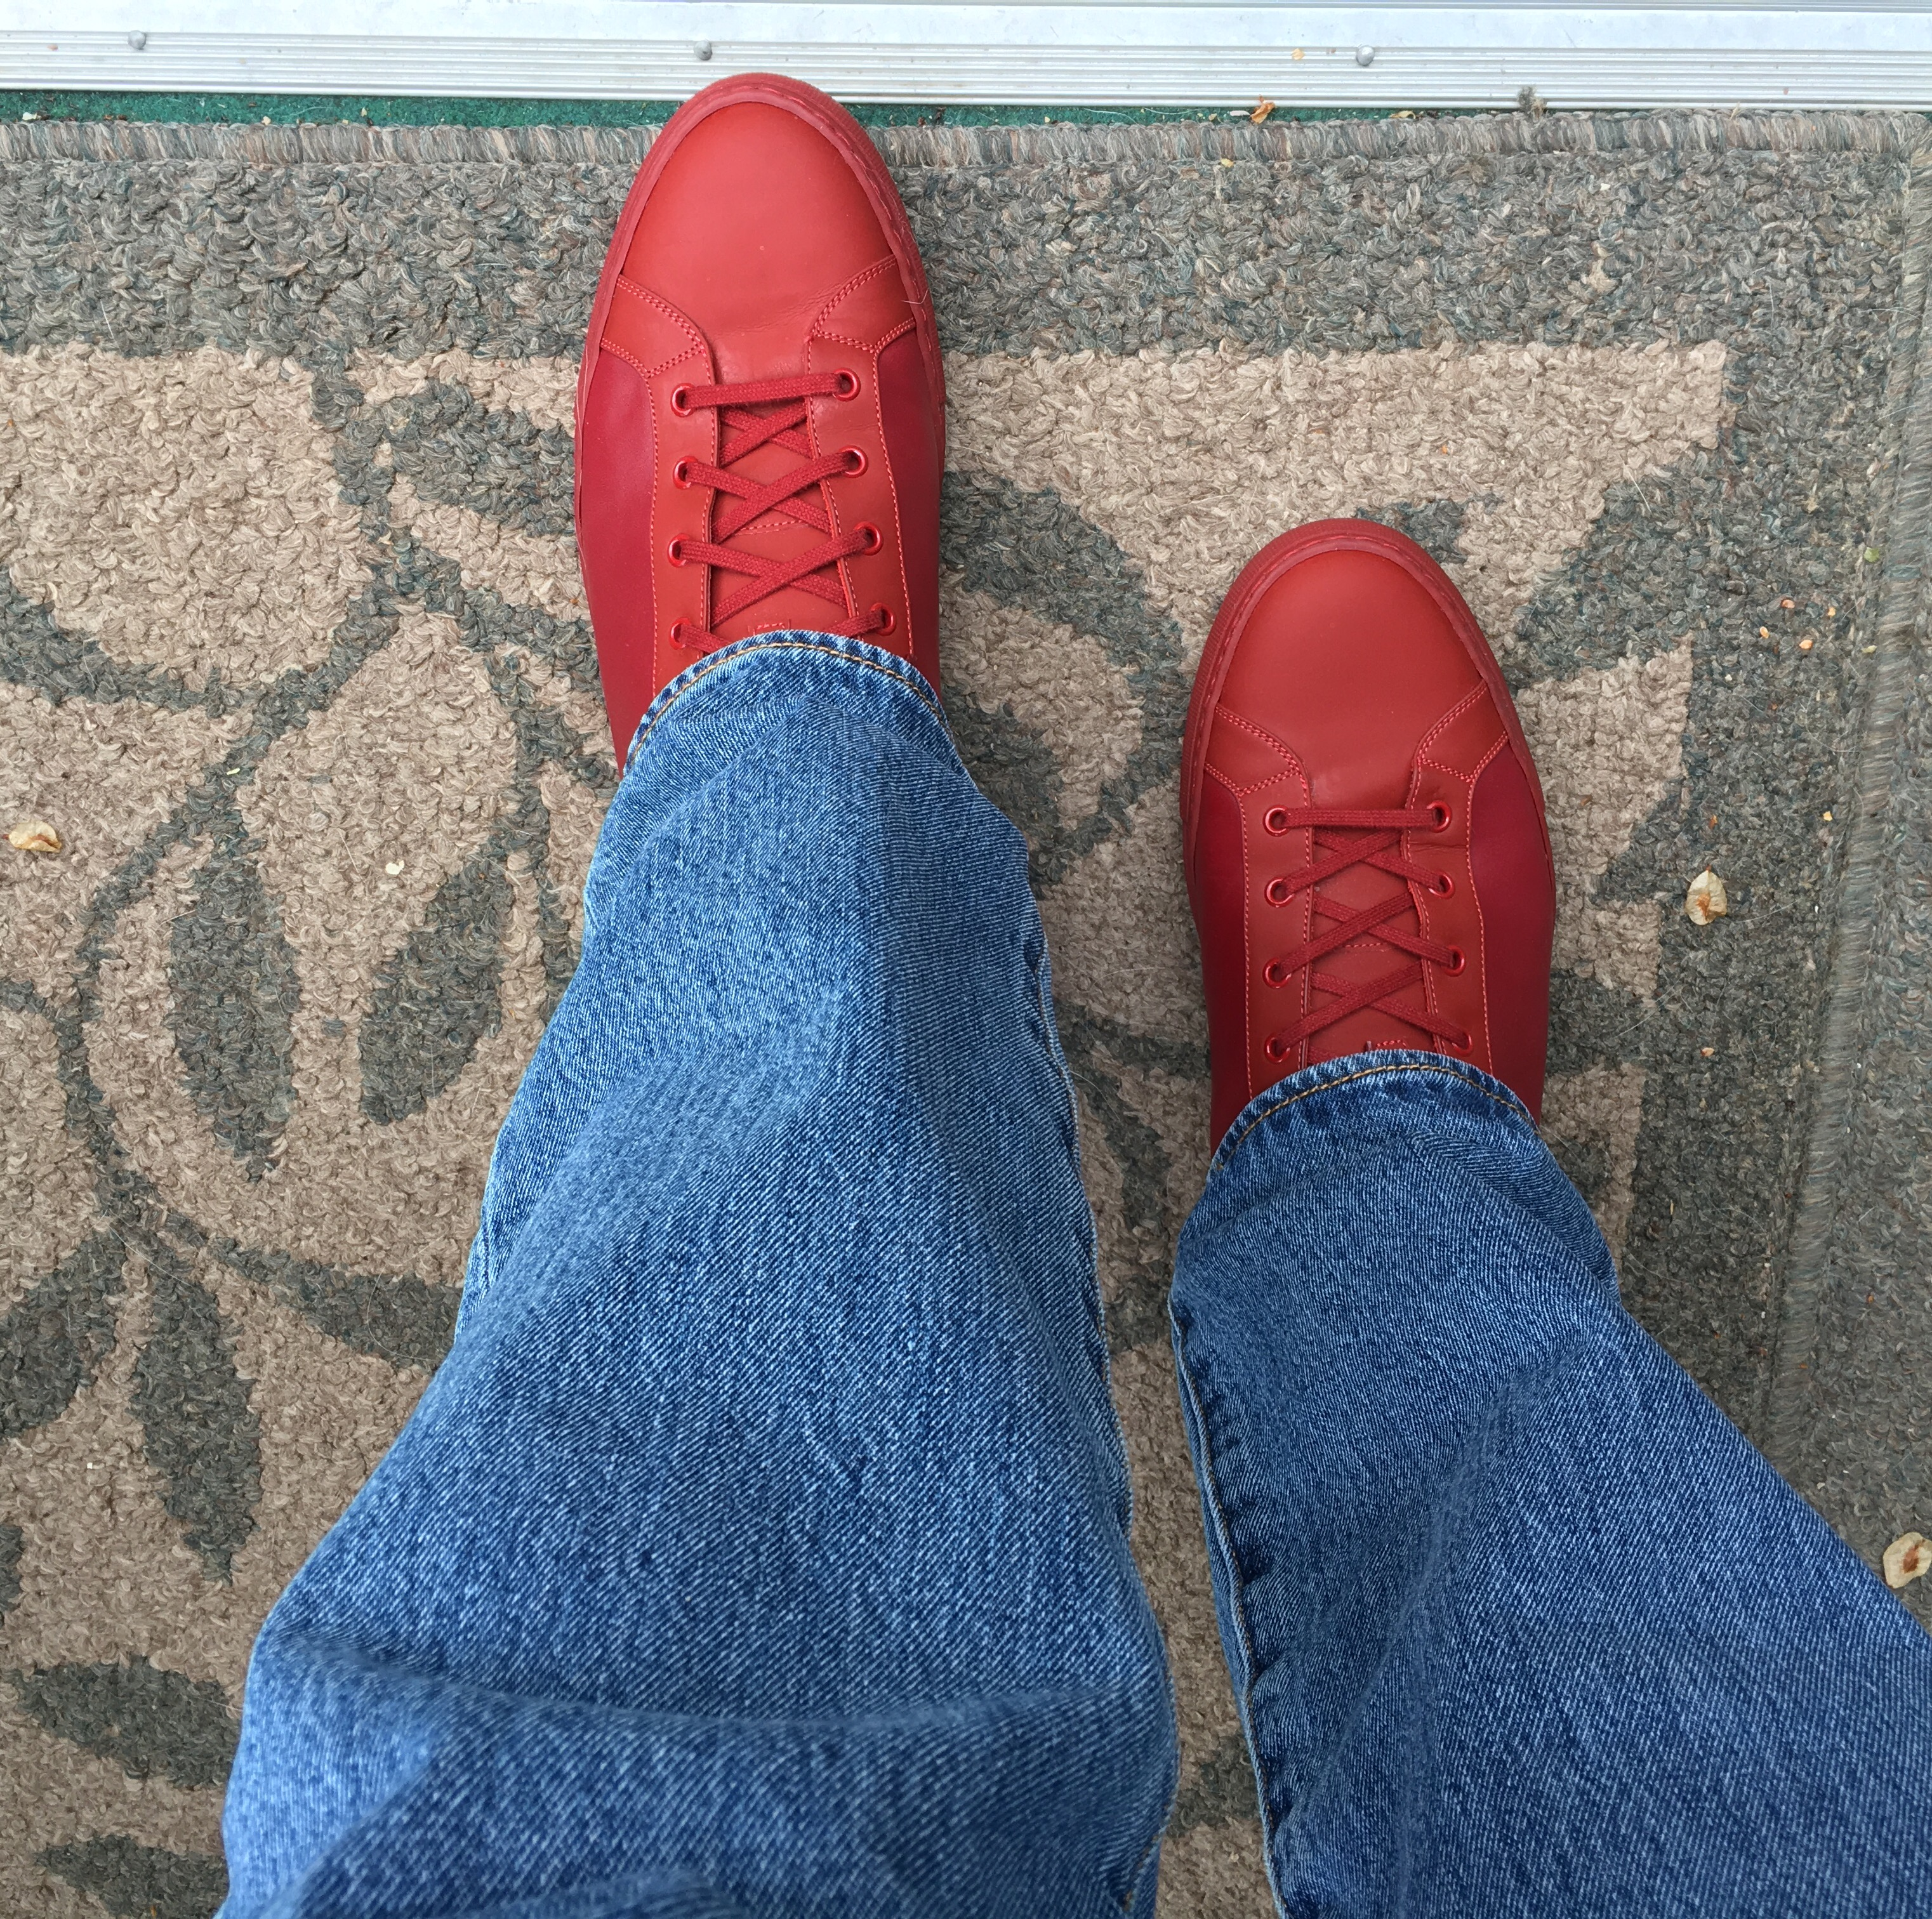 bumblehair's photos in What's On Your Feet? - Streetwear WAYWN for shoes